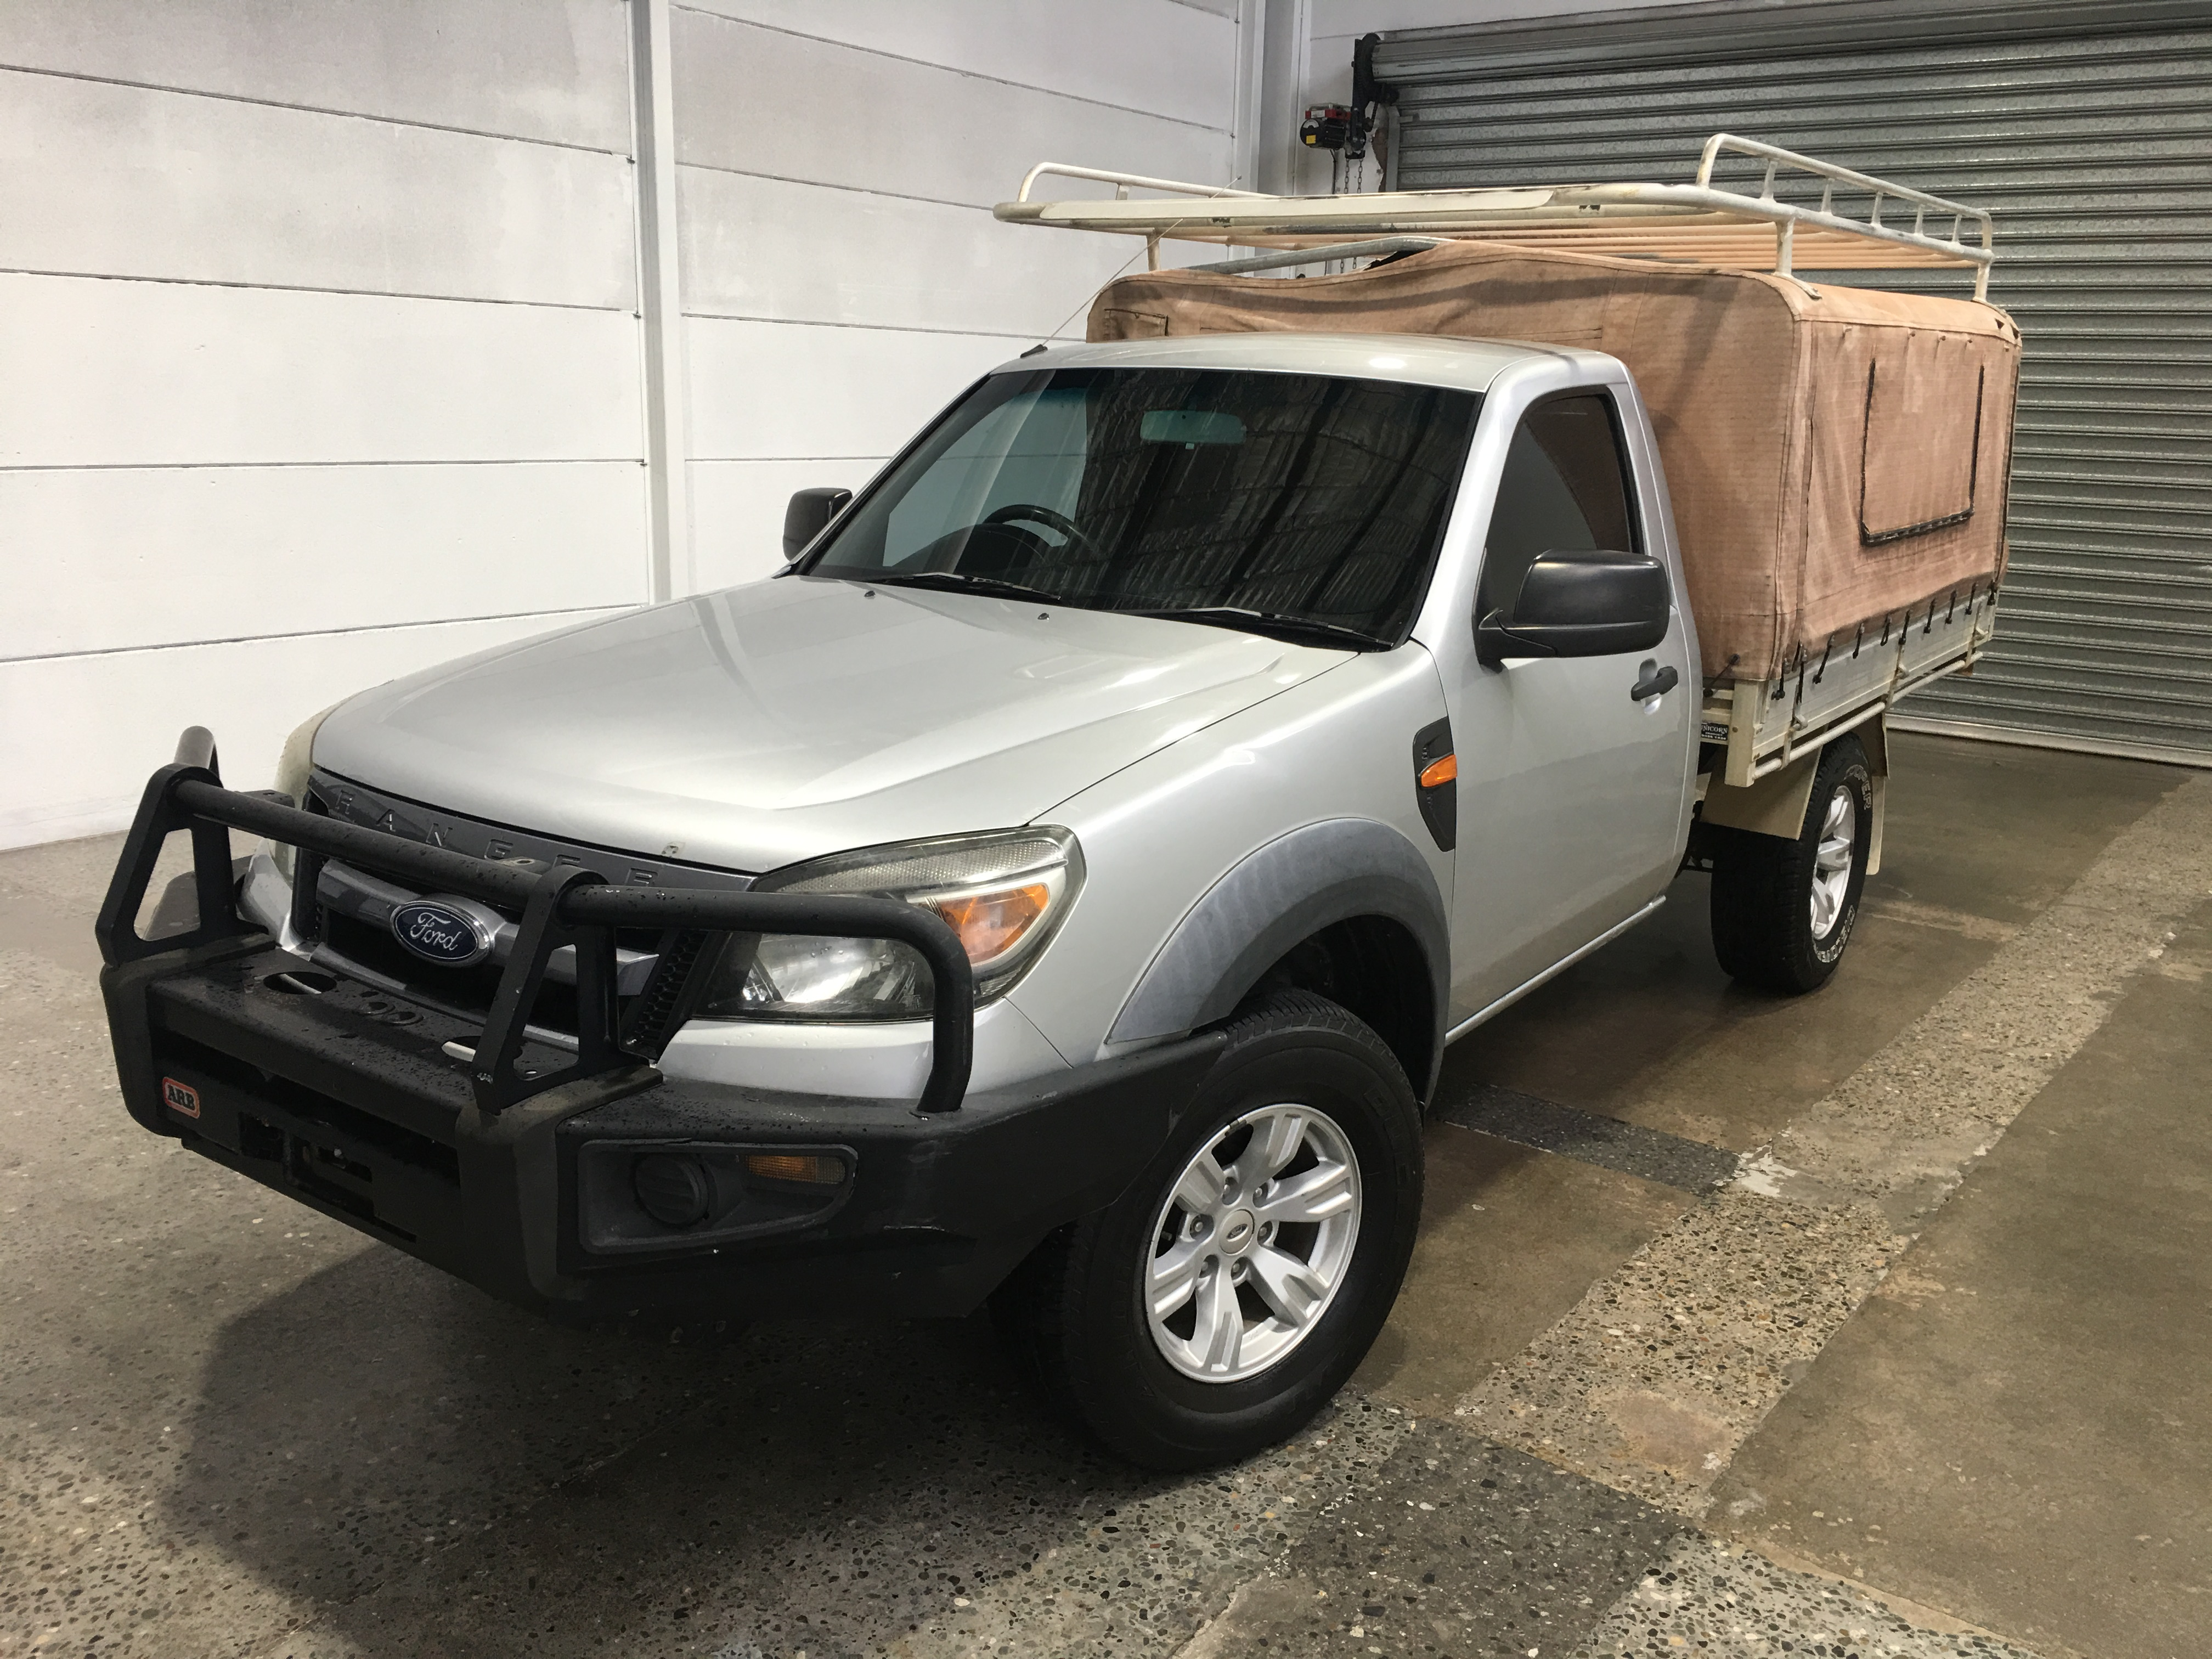 2009 Ford Ranger XL (4x4) PK Turbo Diesel Automatic Cab Chassis